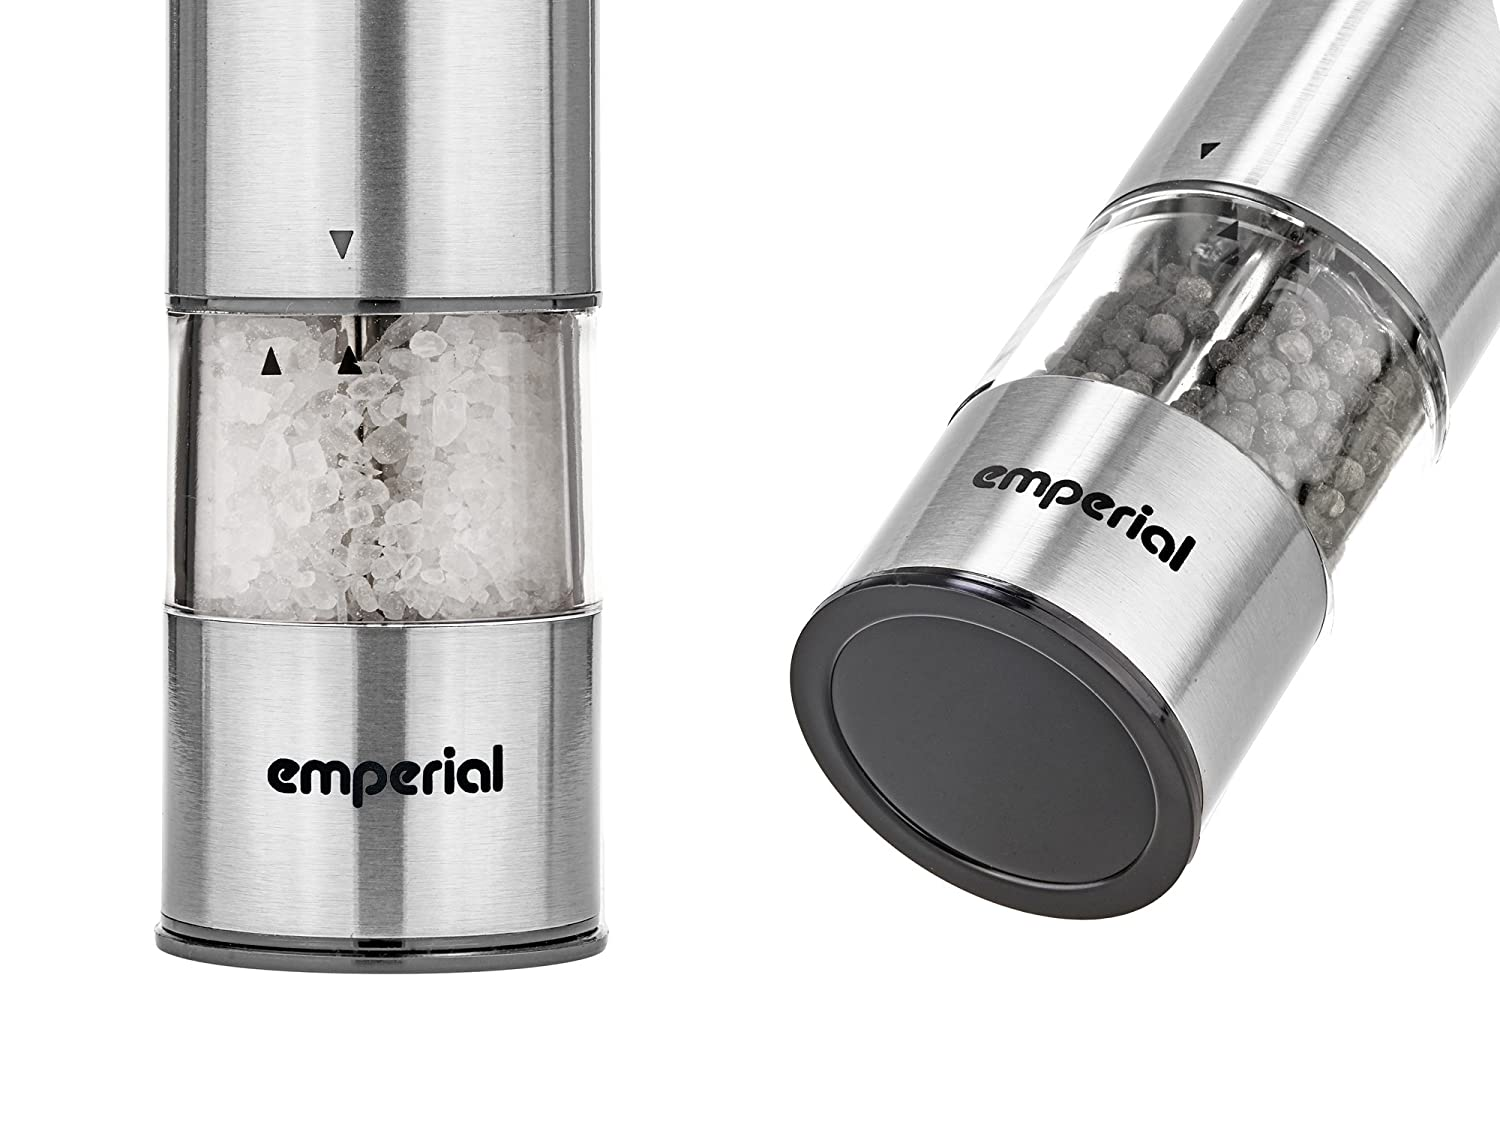 Stainless Steel Electronic One Touch Operation Emperial Electric Salt and Pepper Mill Grinders Set Easy Refill /& Adjustable Coarseness